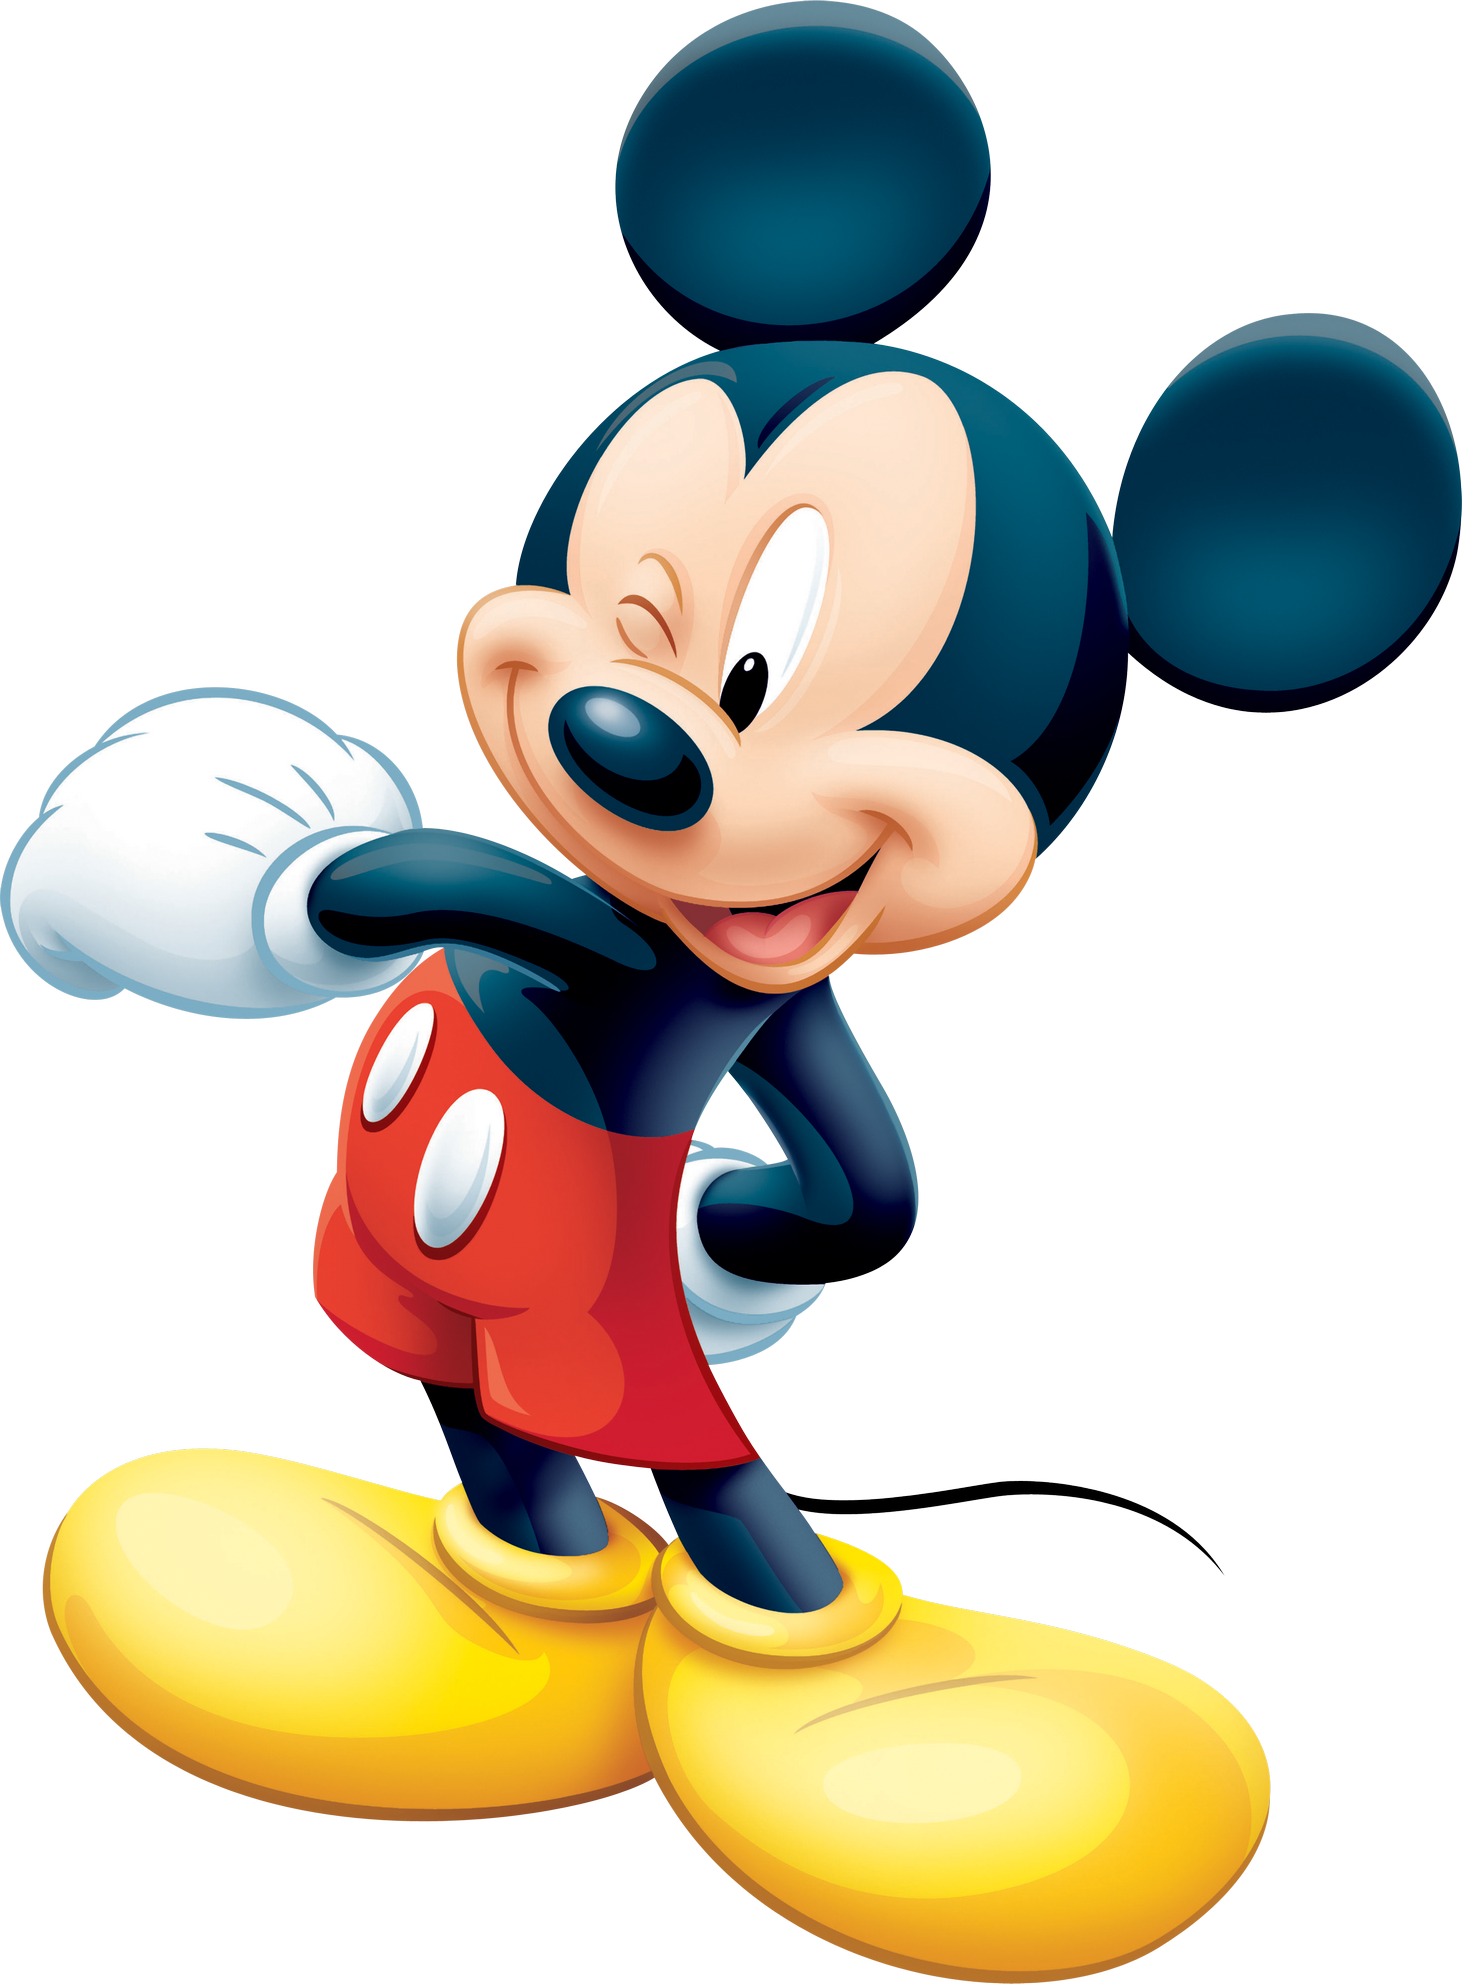 Mickey mouse png images. Image purepng free transparent